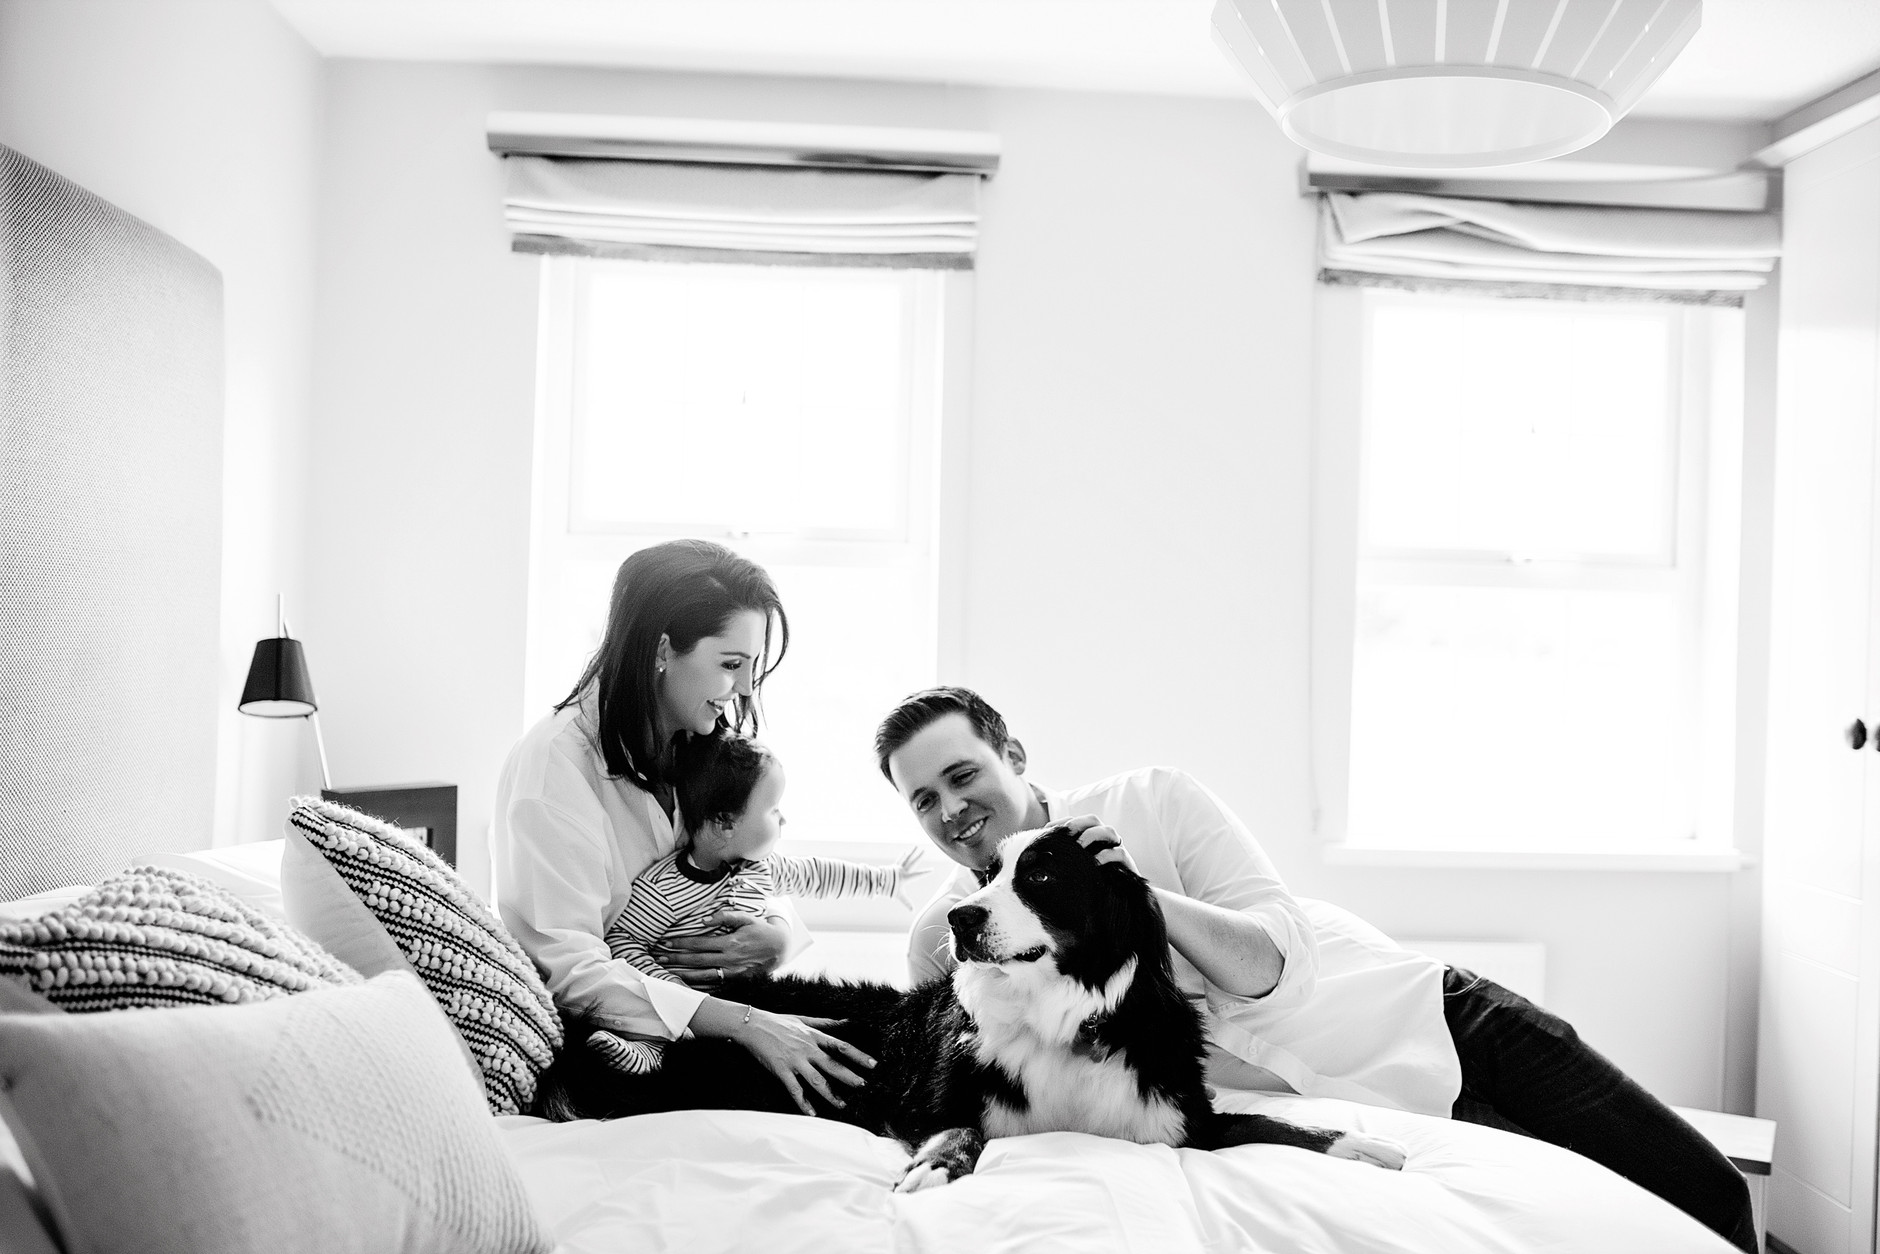 Whole family on the bed for a portrait, including a big dog